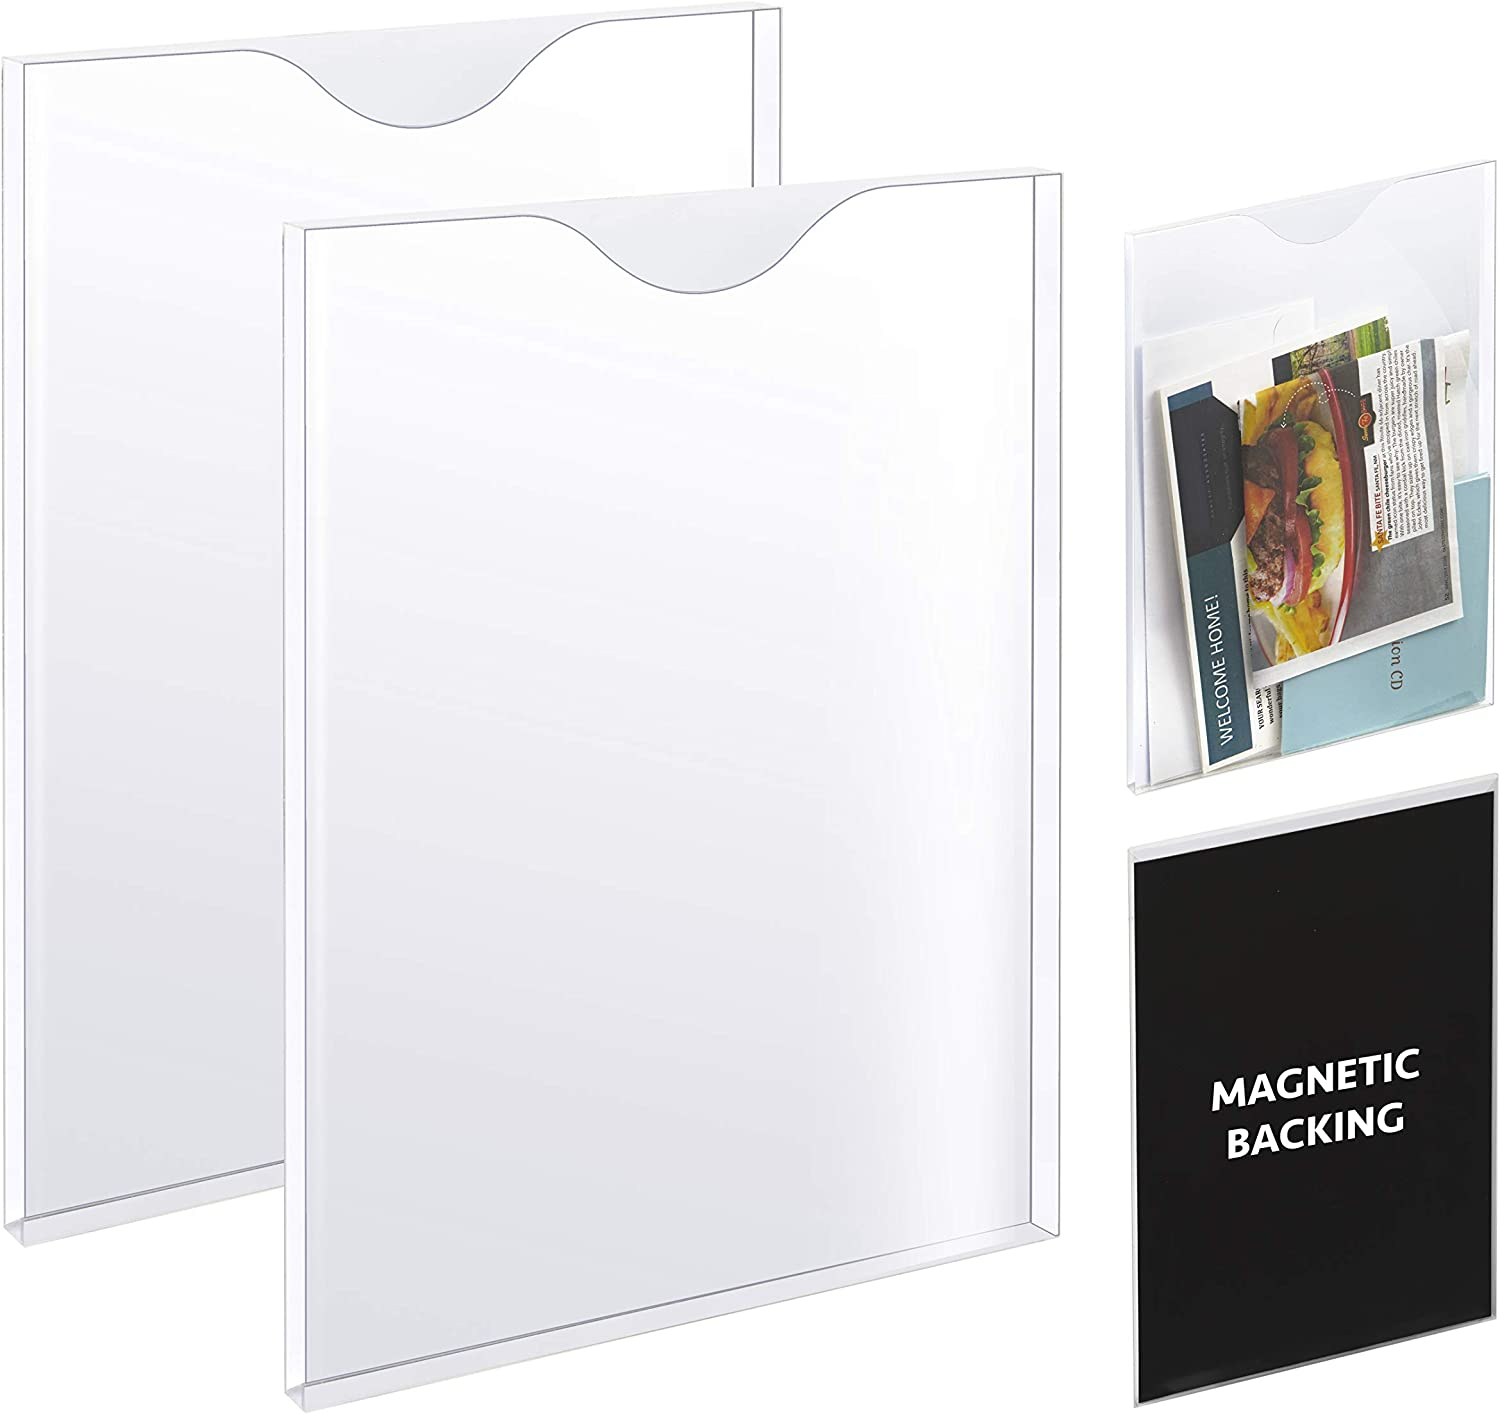 Set of 2 – Clear Vertical Magnetic PVC File Holder with Strong Magnetic Back, Paper Holder and File Organizer, Letter Holder for A4 Size Documents, Good for Whiteboard, Office, Refrigerator, Locker